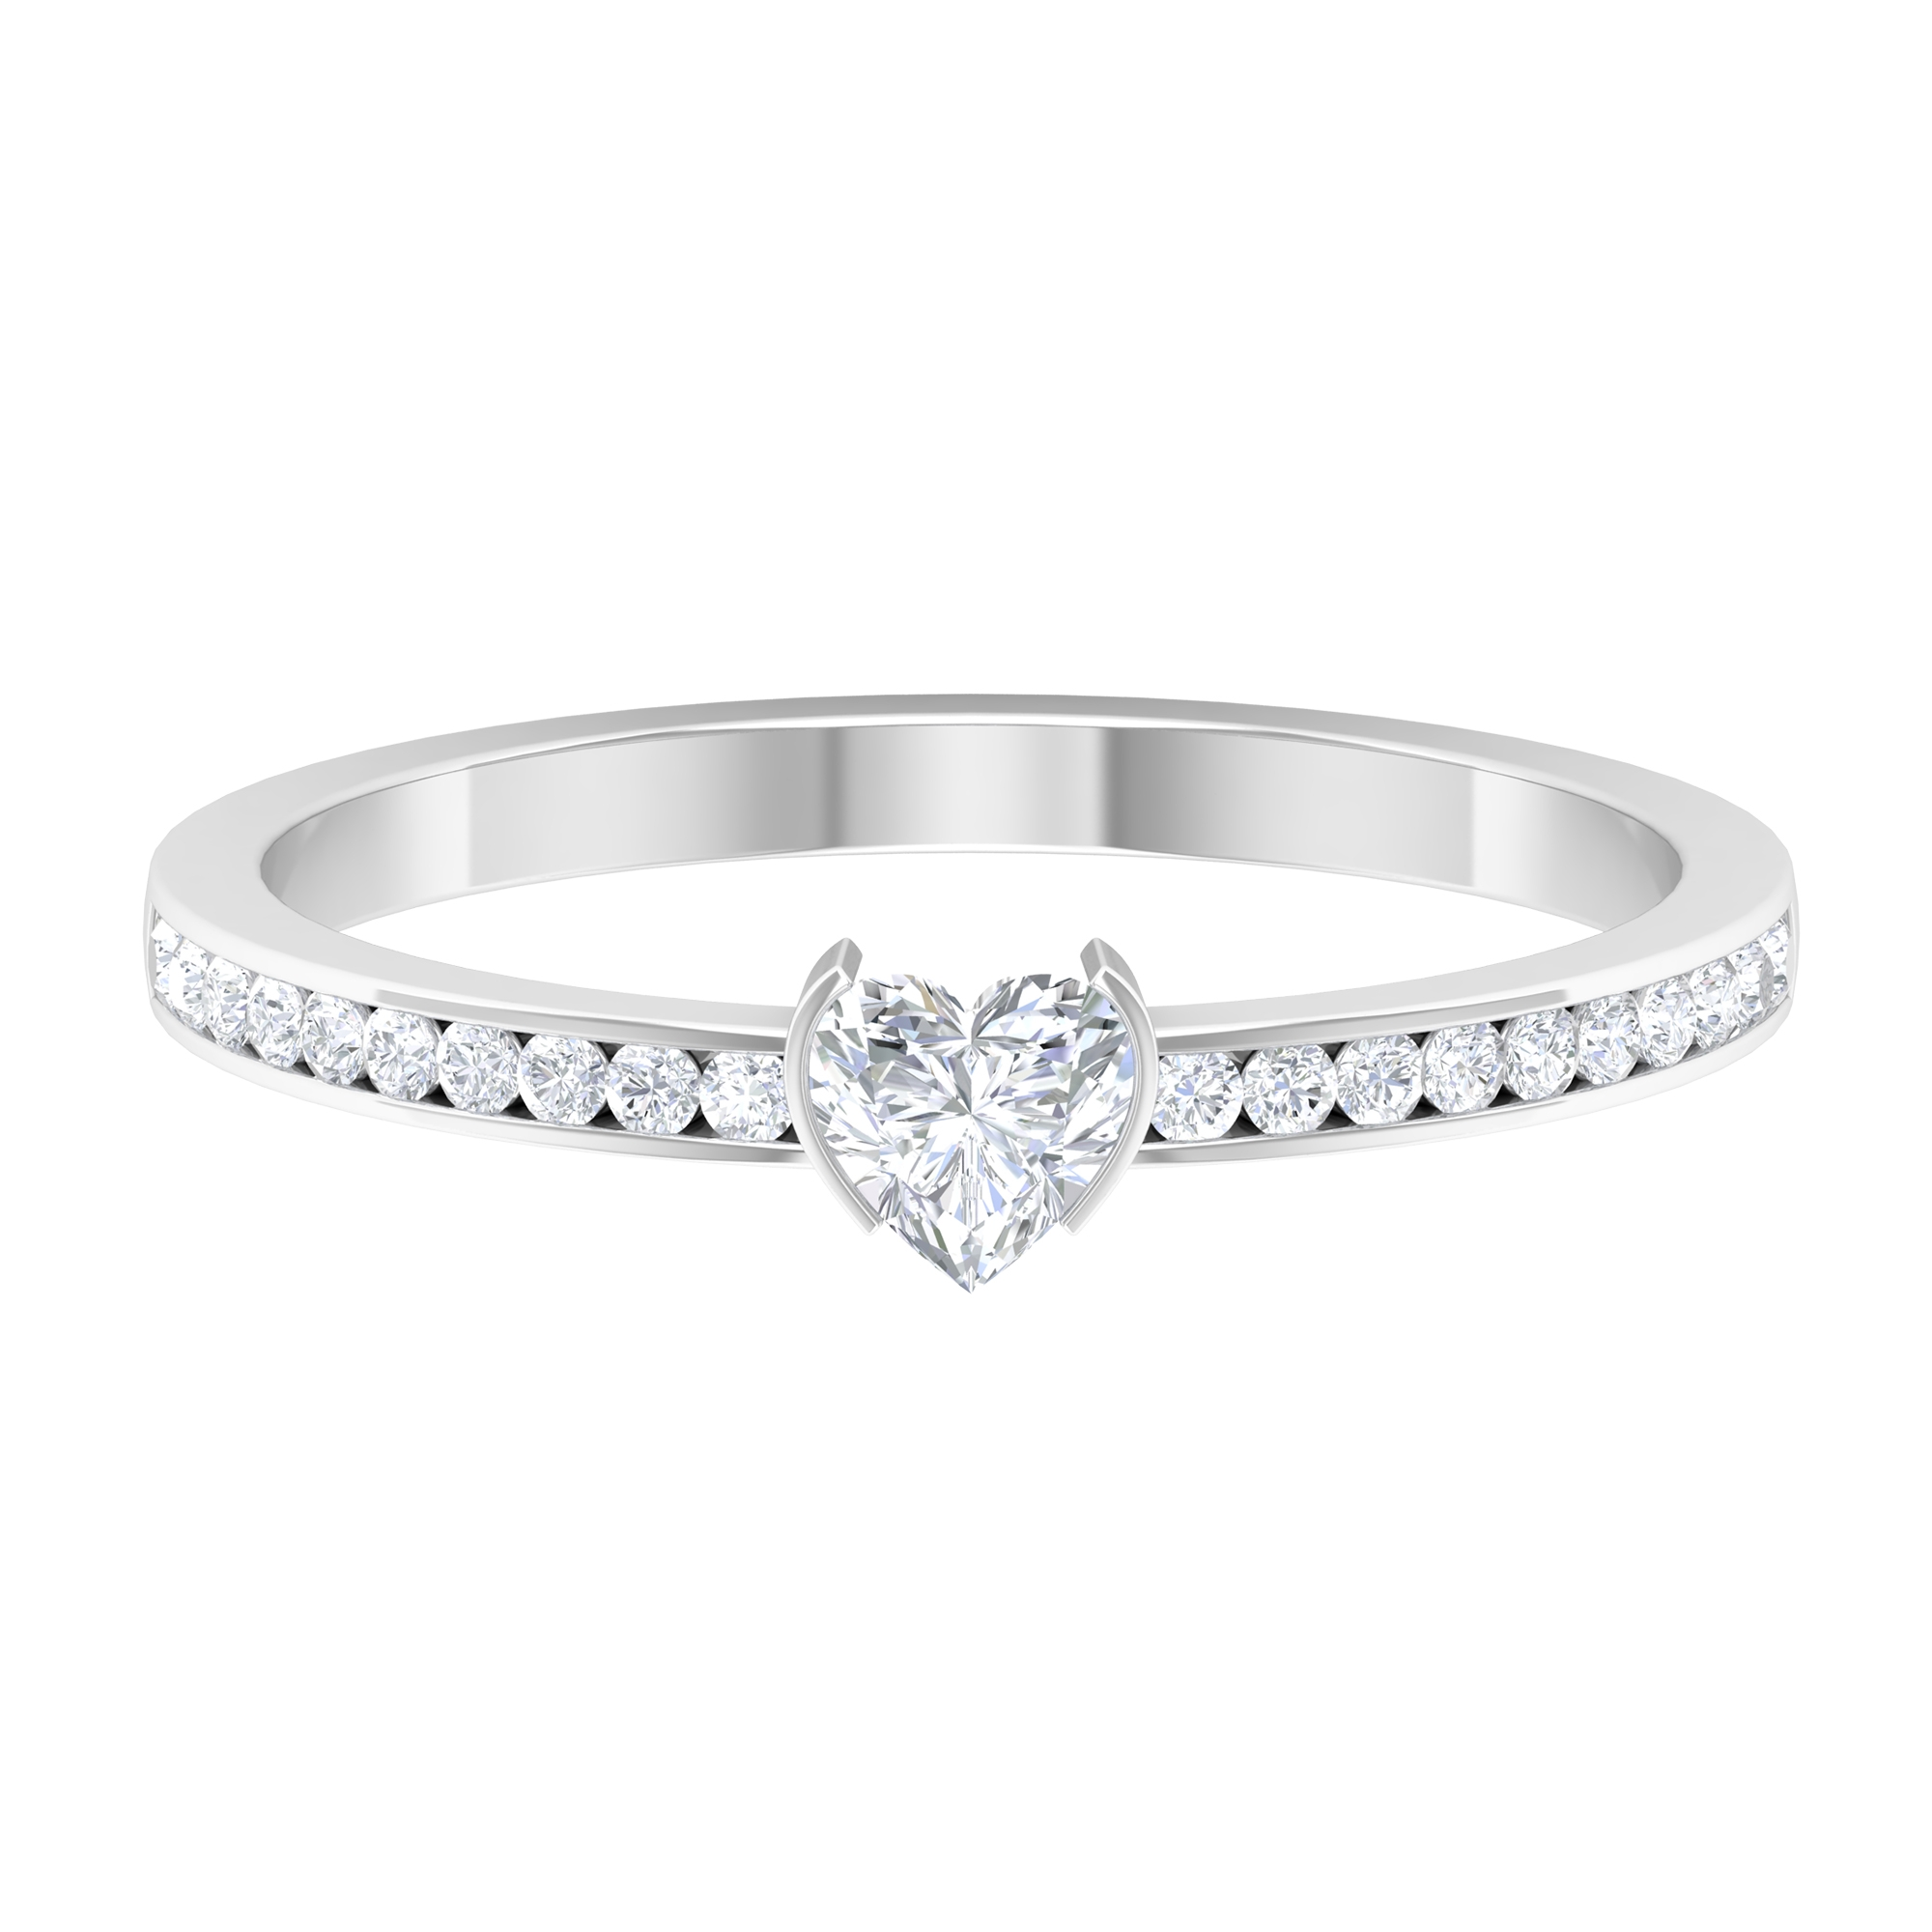 4X4 MM Heart Shape Diamond Solitaire Ring in Bar Setting with Side Stones